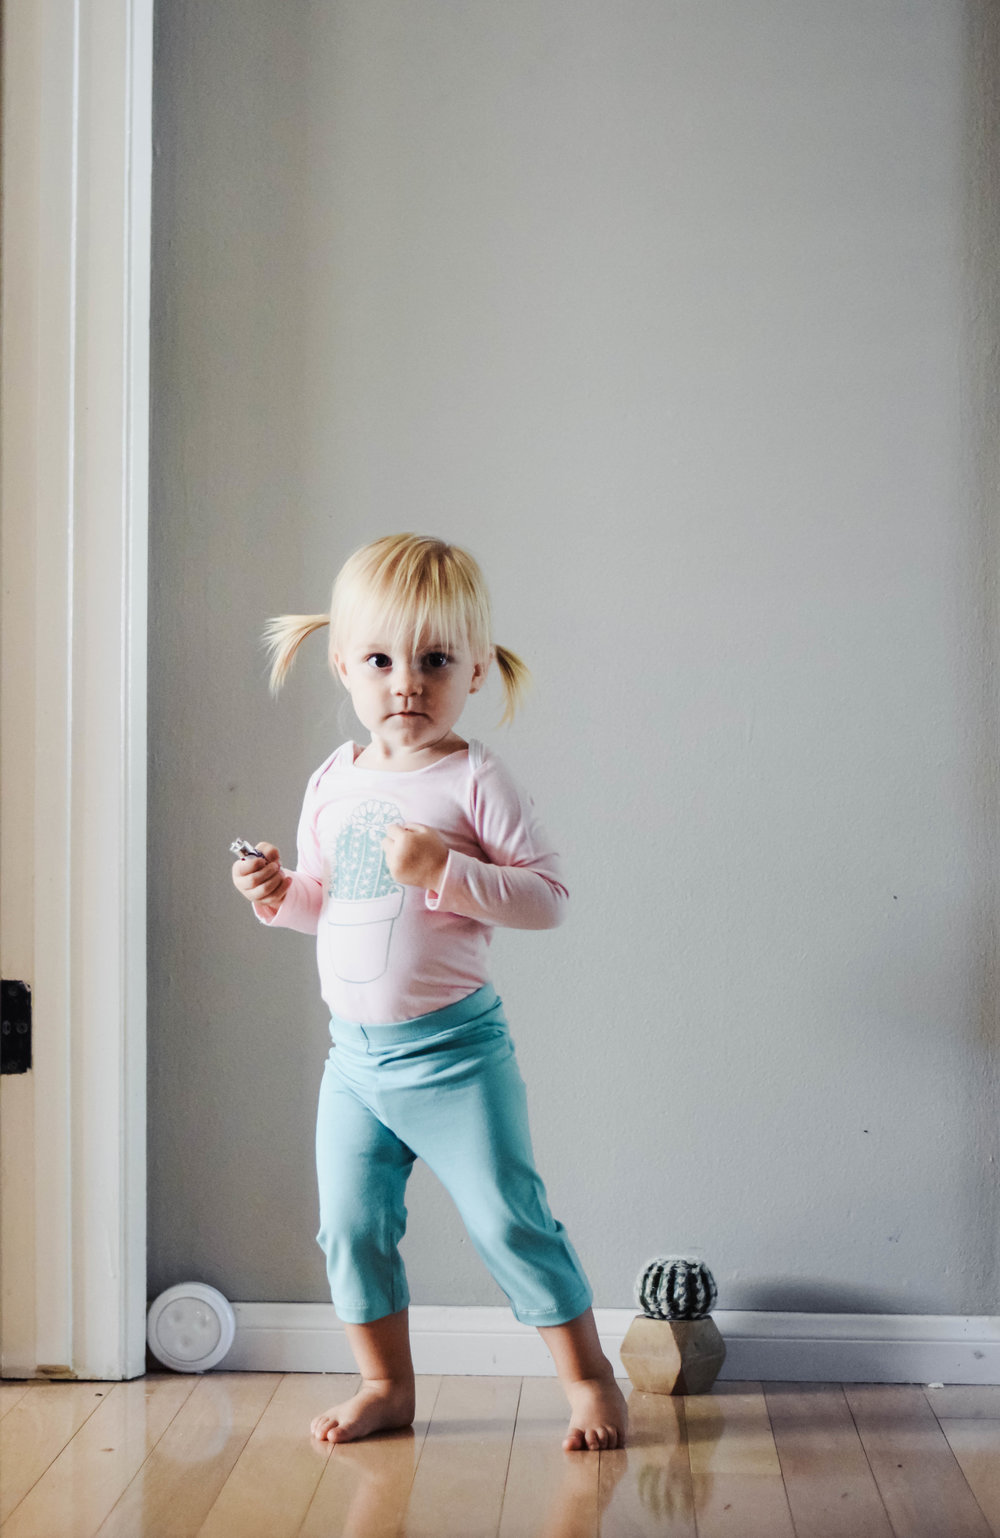 Cute Kids-Baby Onesies and Leggings - Eco Friendly Baby Clothes - Baby Blastoff | A World Full of Possibilities